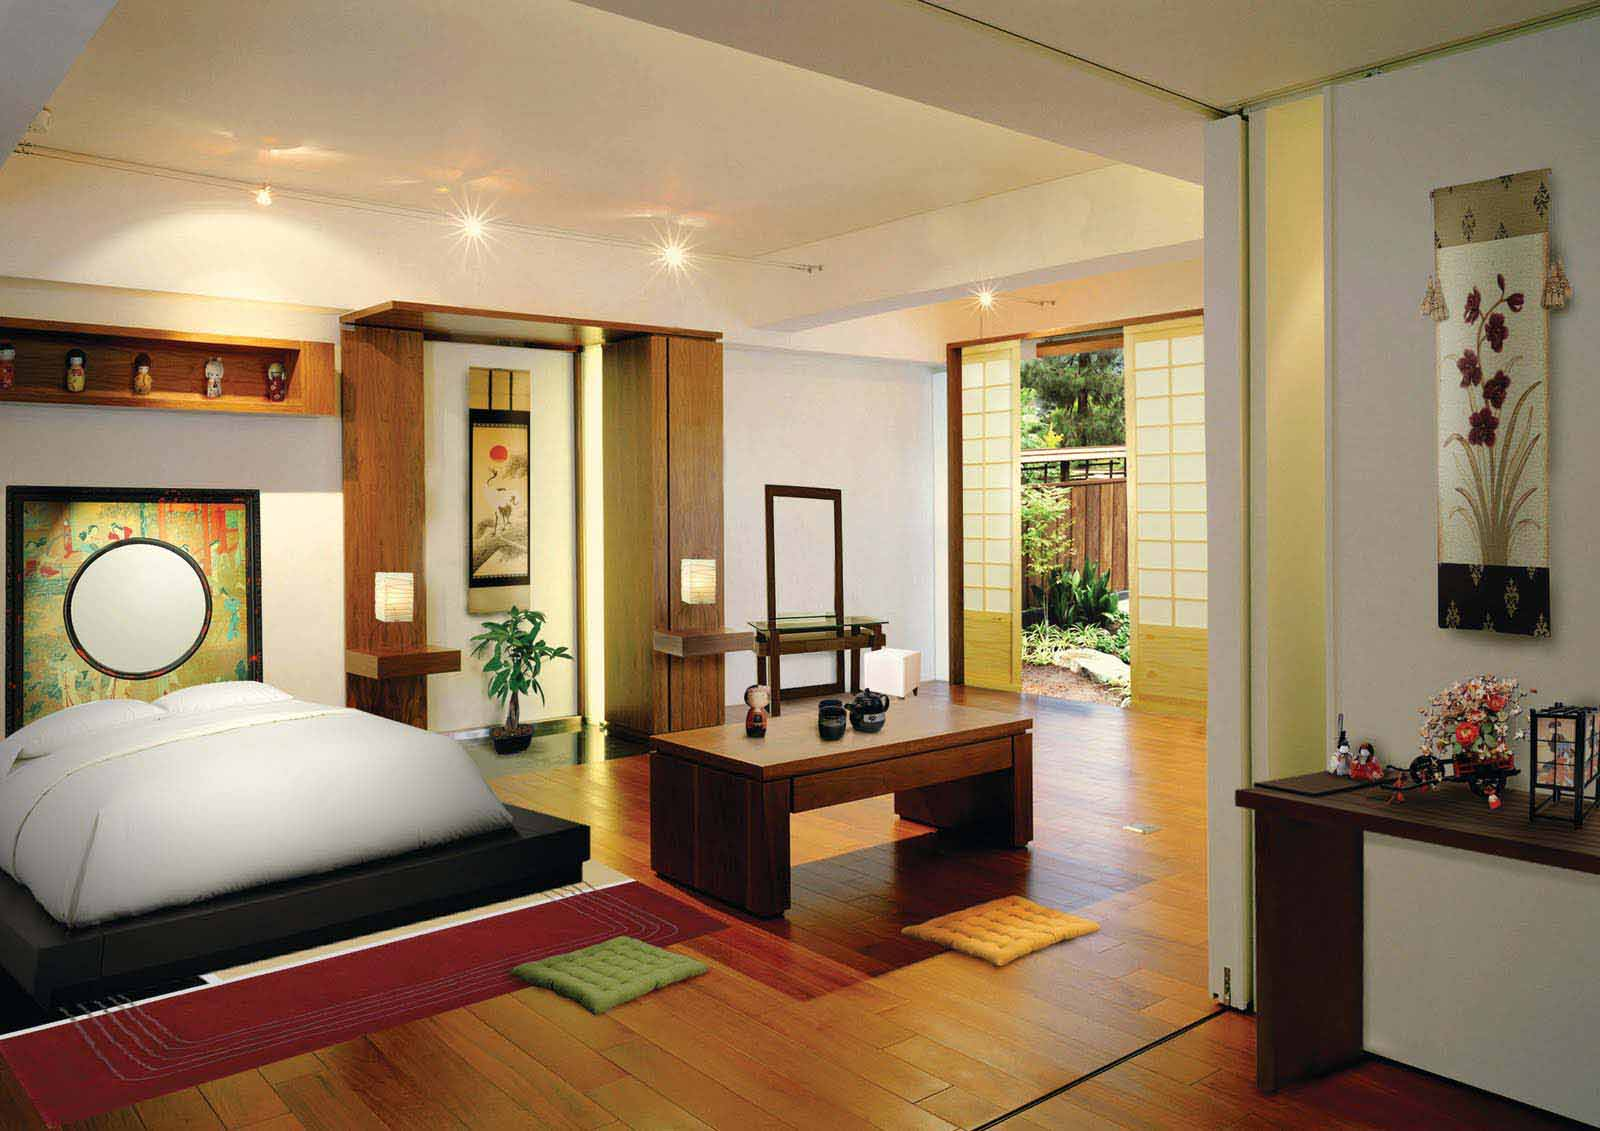 Asian Style Bedroom Ideas Creative: Small Master Bedroom Ideas